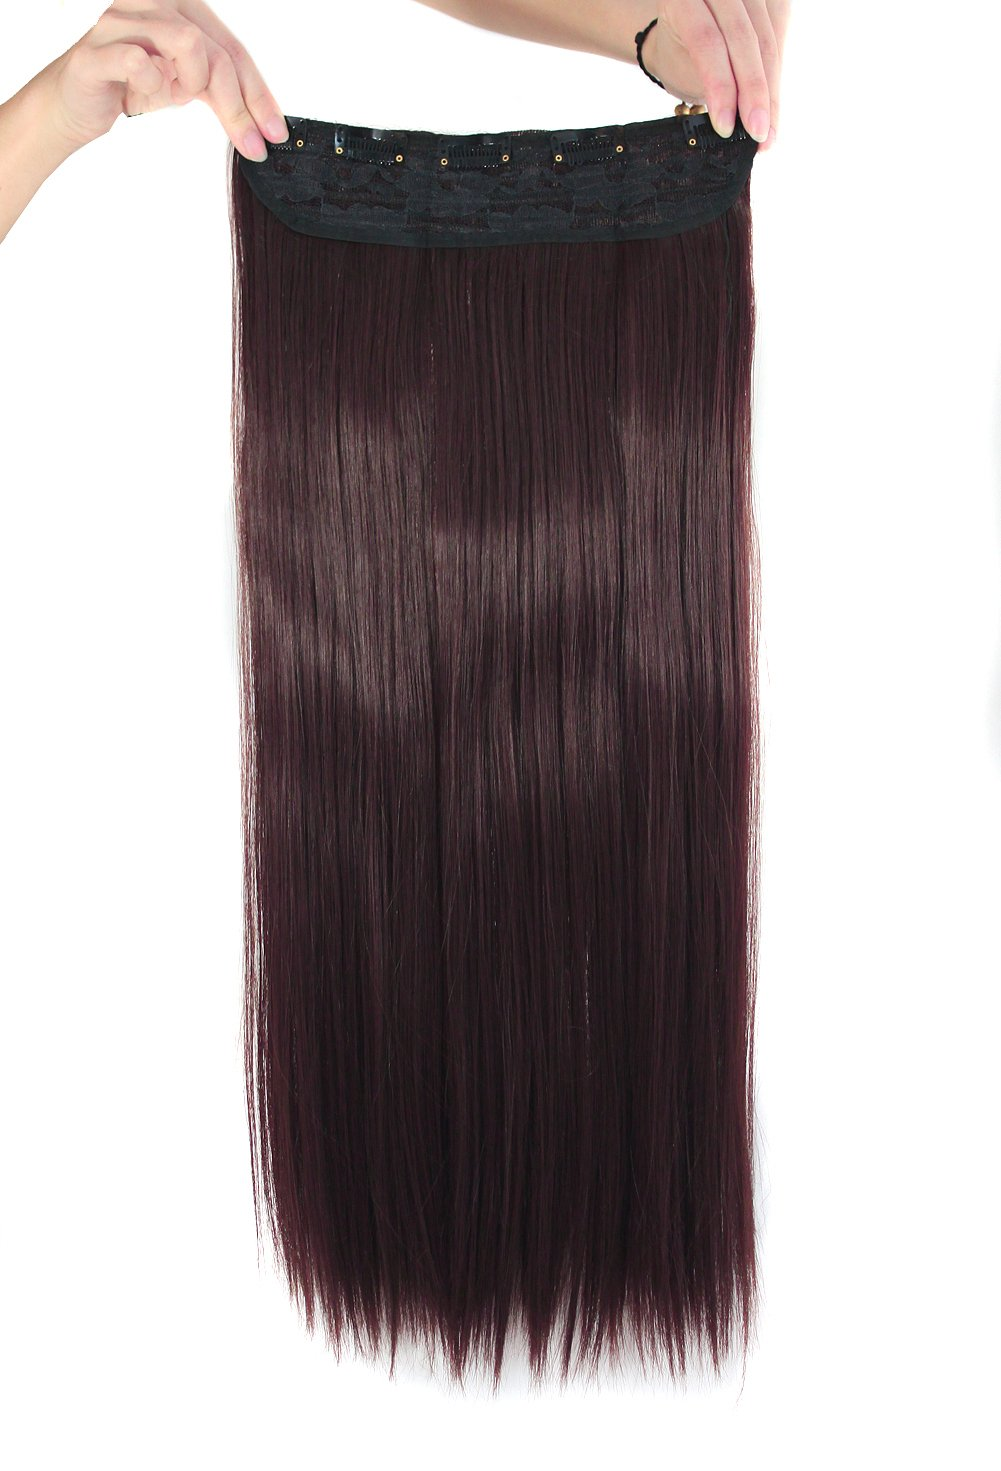 Amazon Mapofbeauty 24 Long Straight 5 Clip Hair Extensions